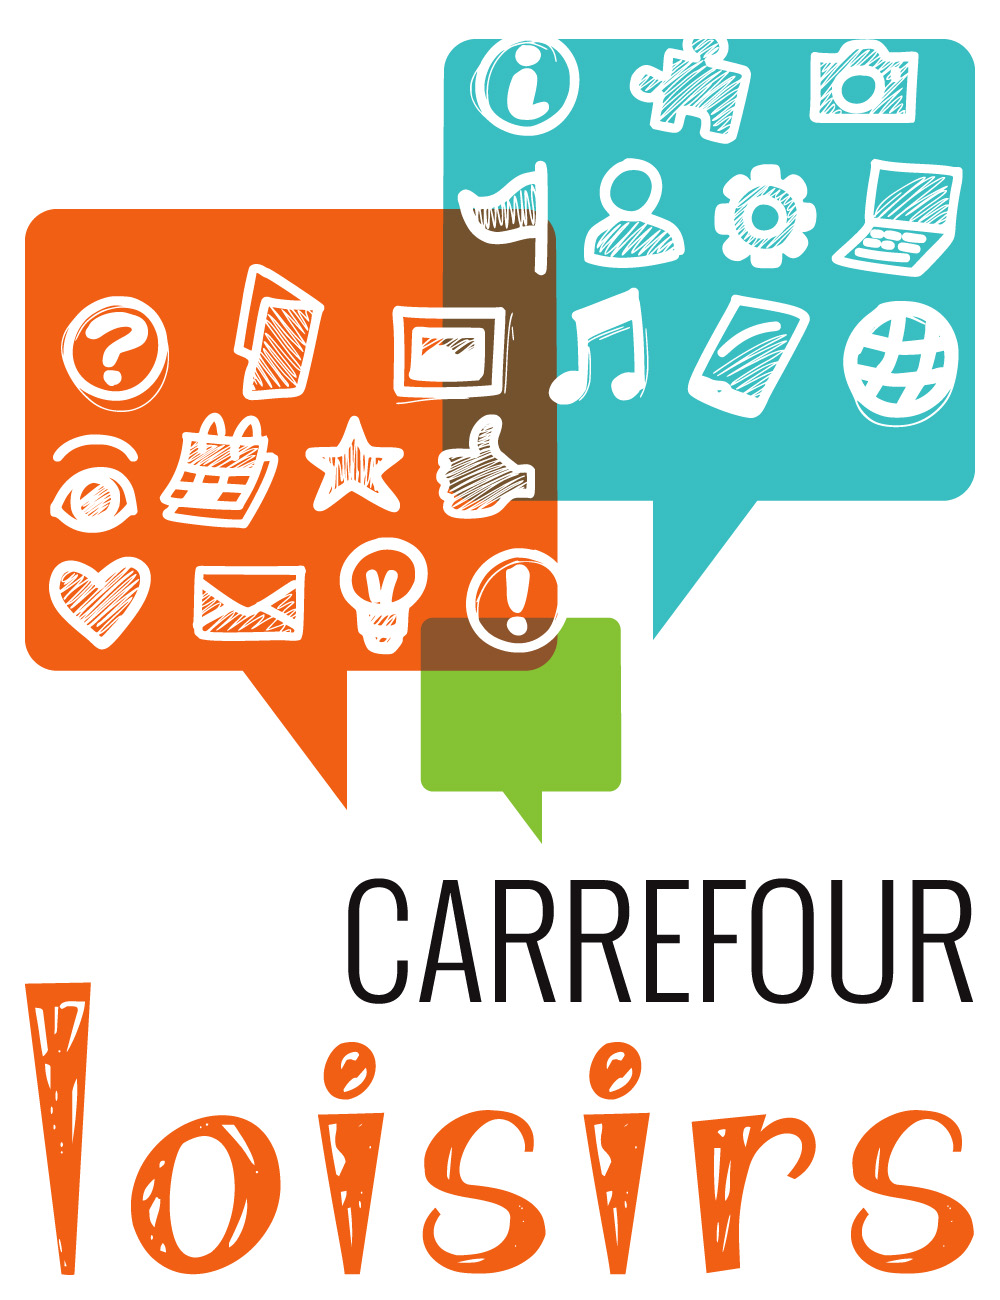 Carrefour loisirs - image